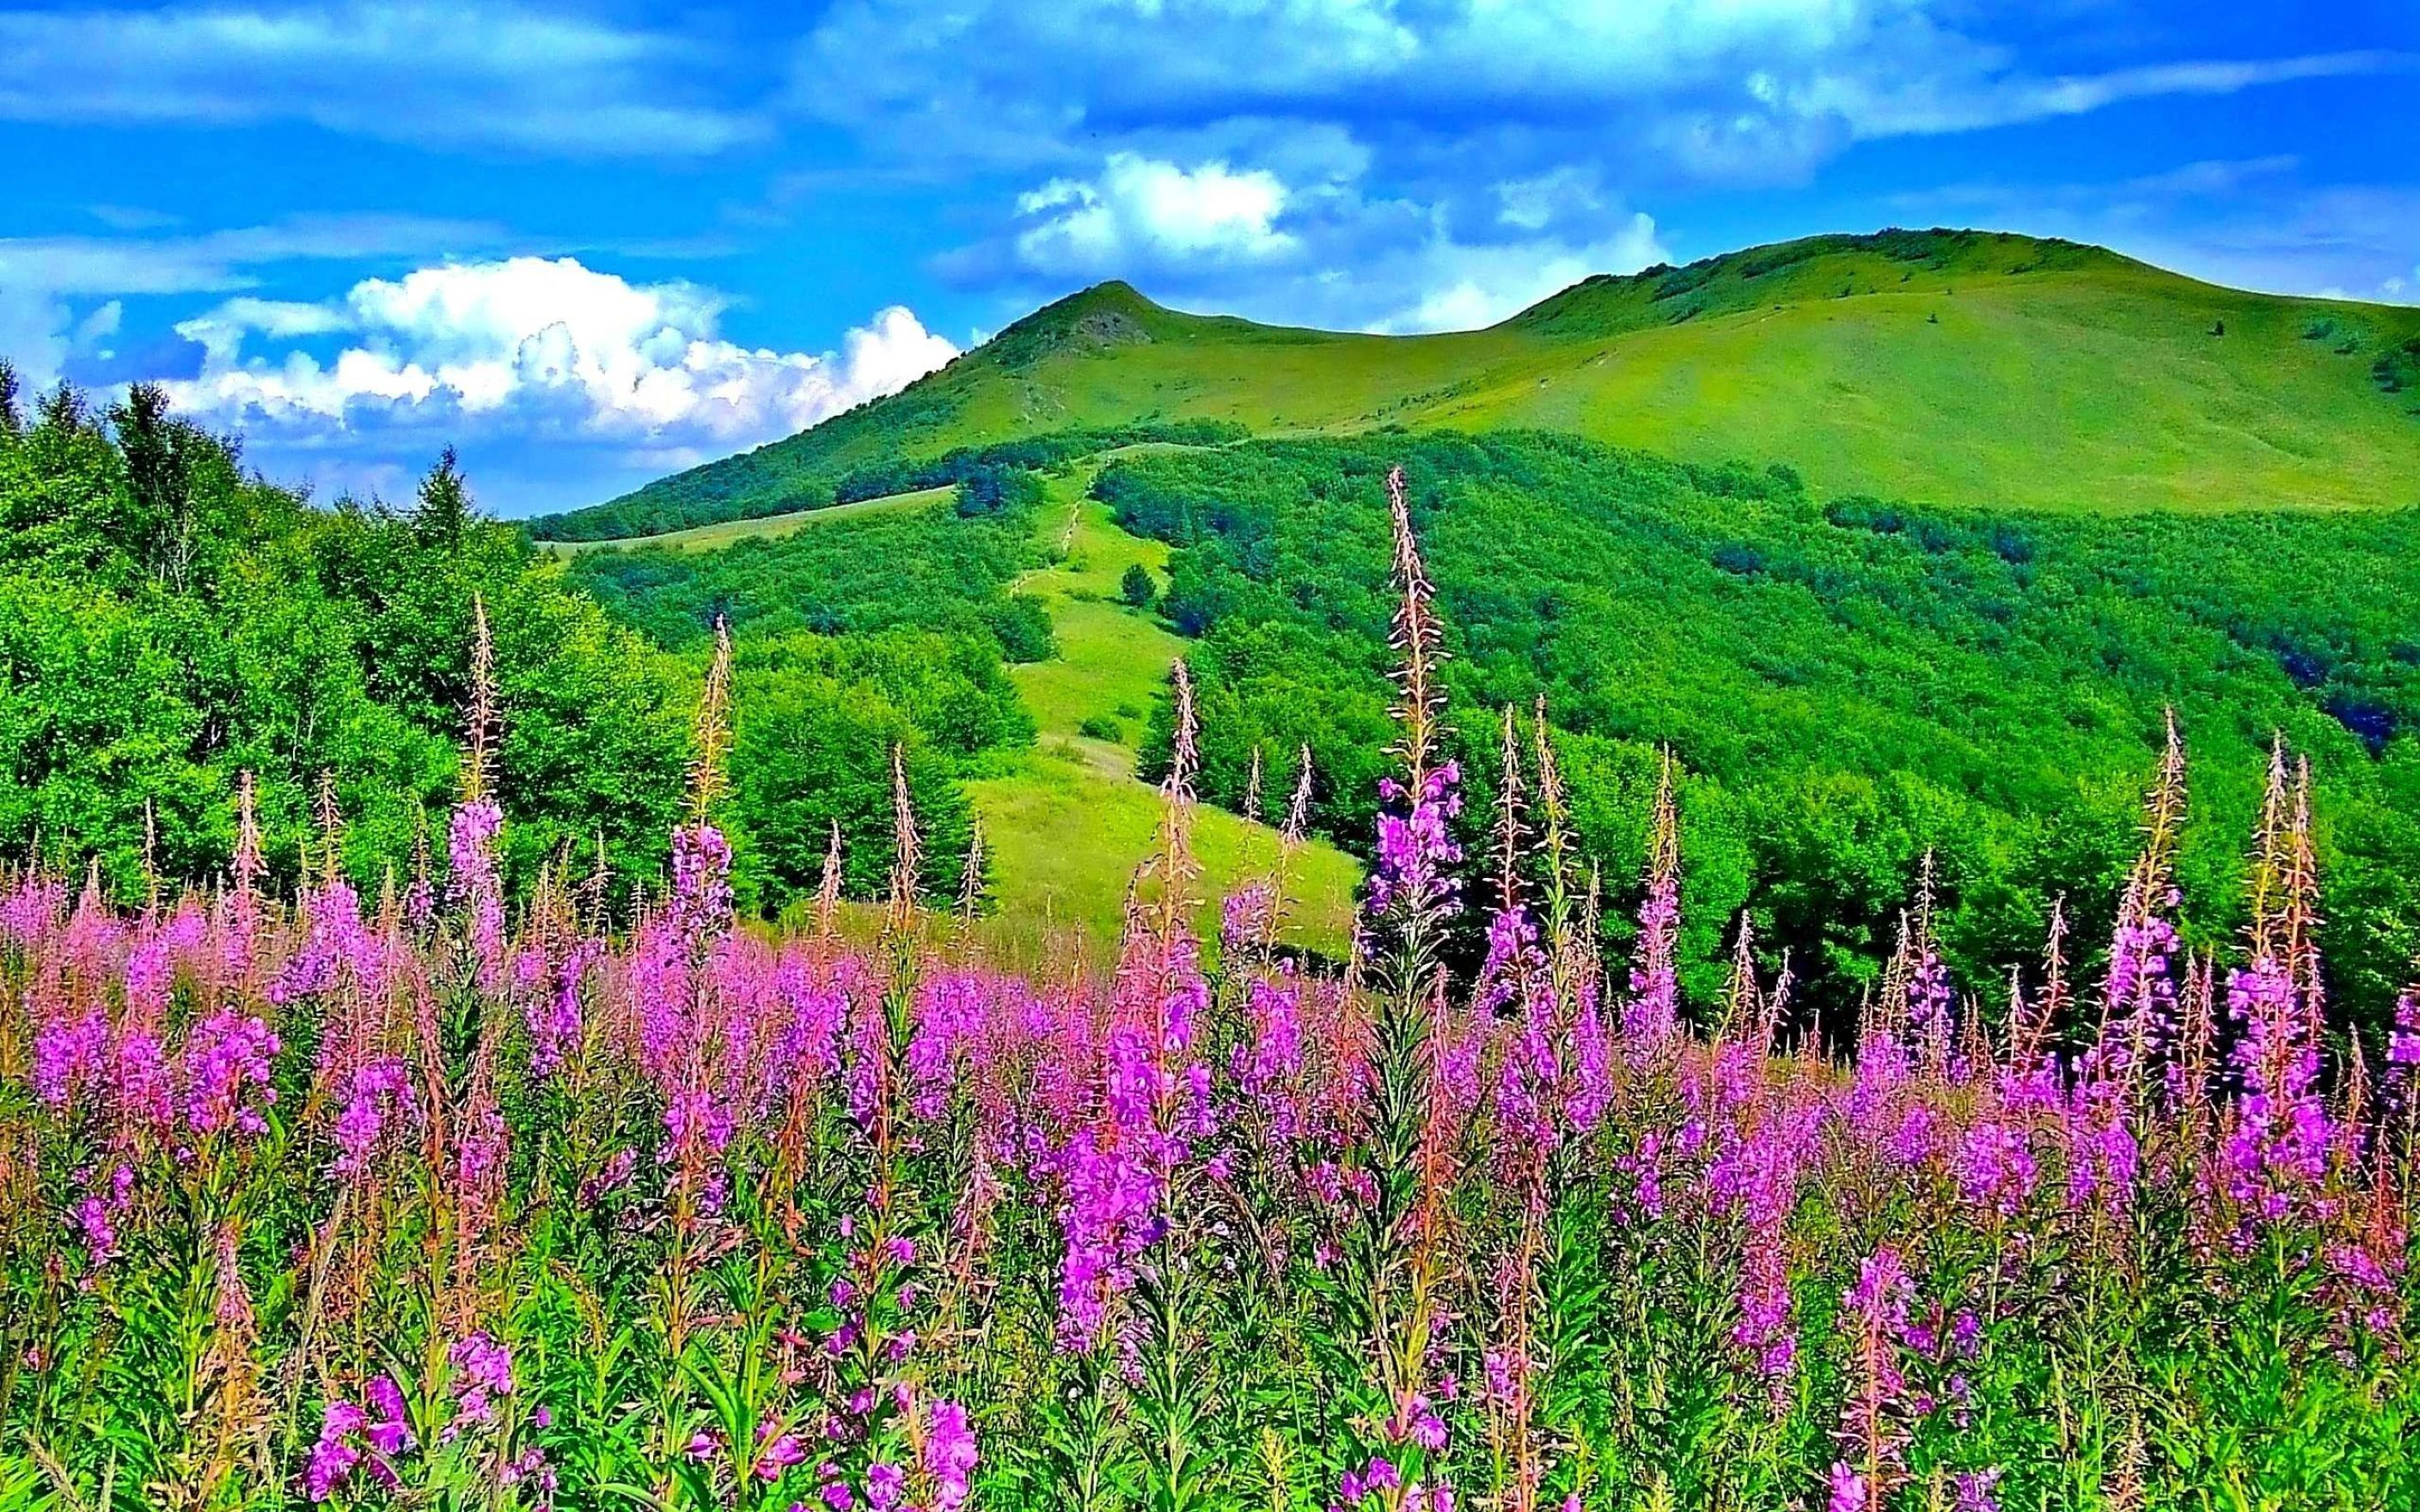 Download free HD Green Mountain Flowers Trees Nature Wallpaper, image